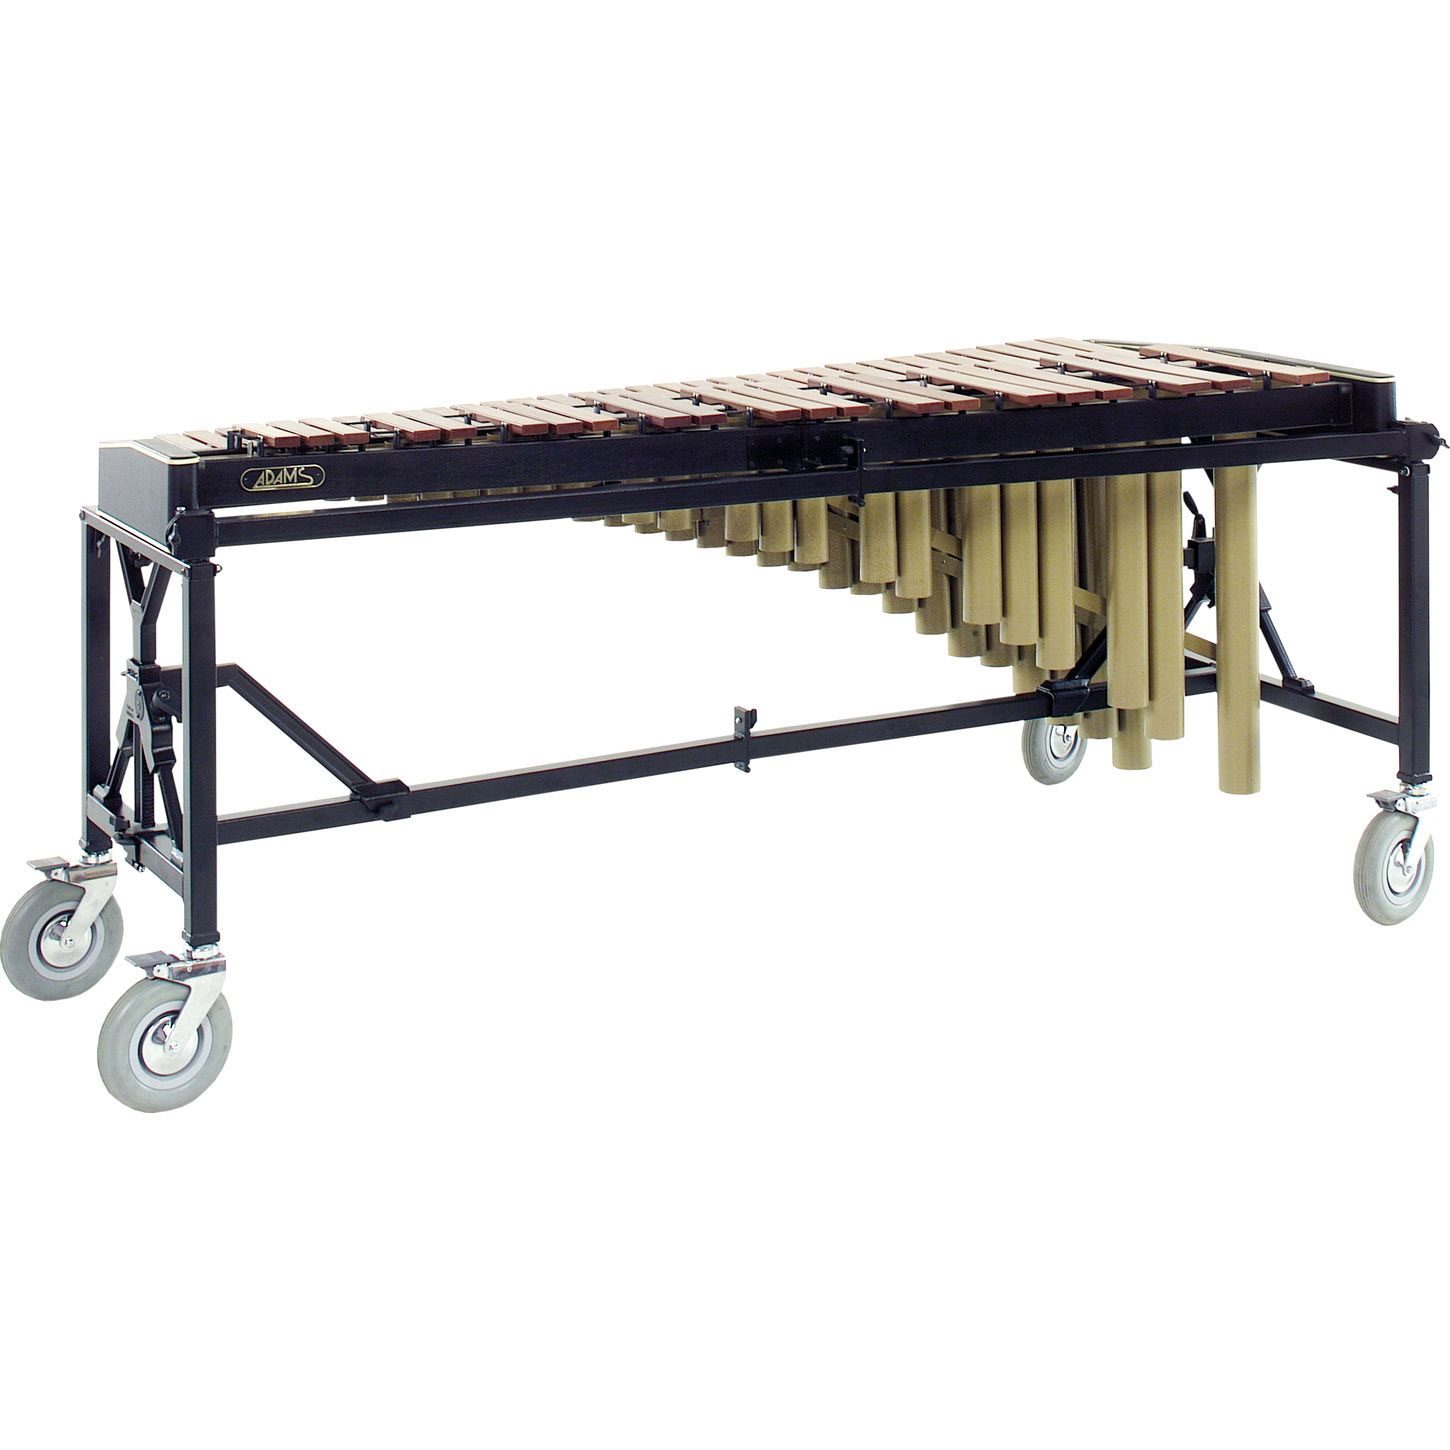 Adams 4.3 Octave Artist Series Synthetic Marimba on Endurance Field Frame with Black Leather Rails